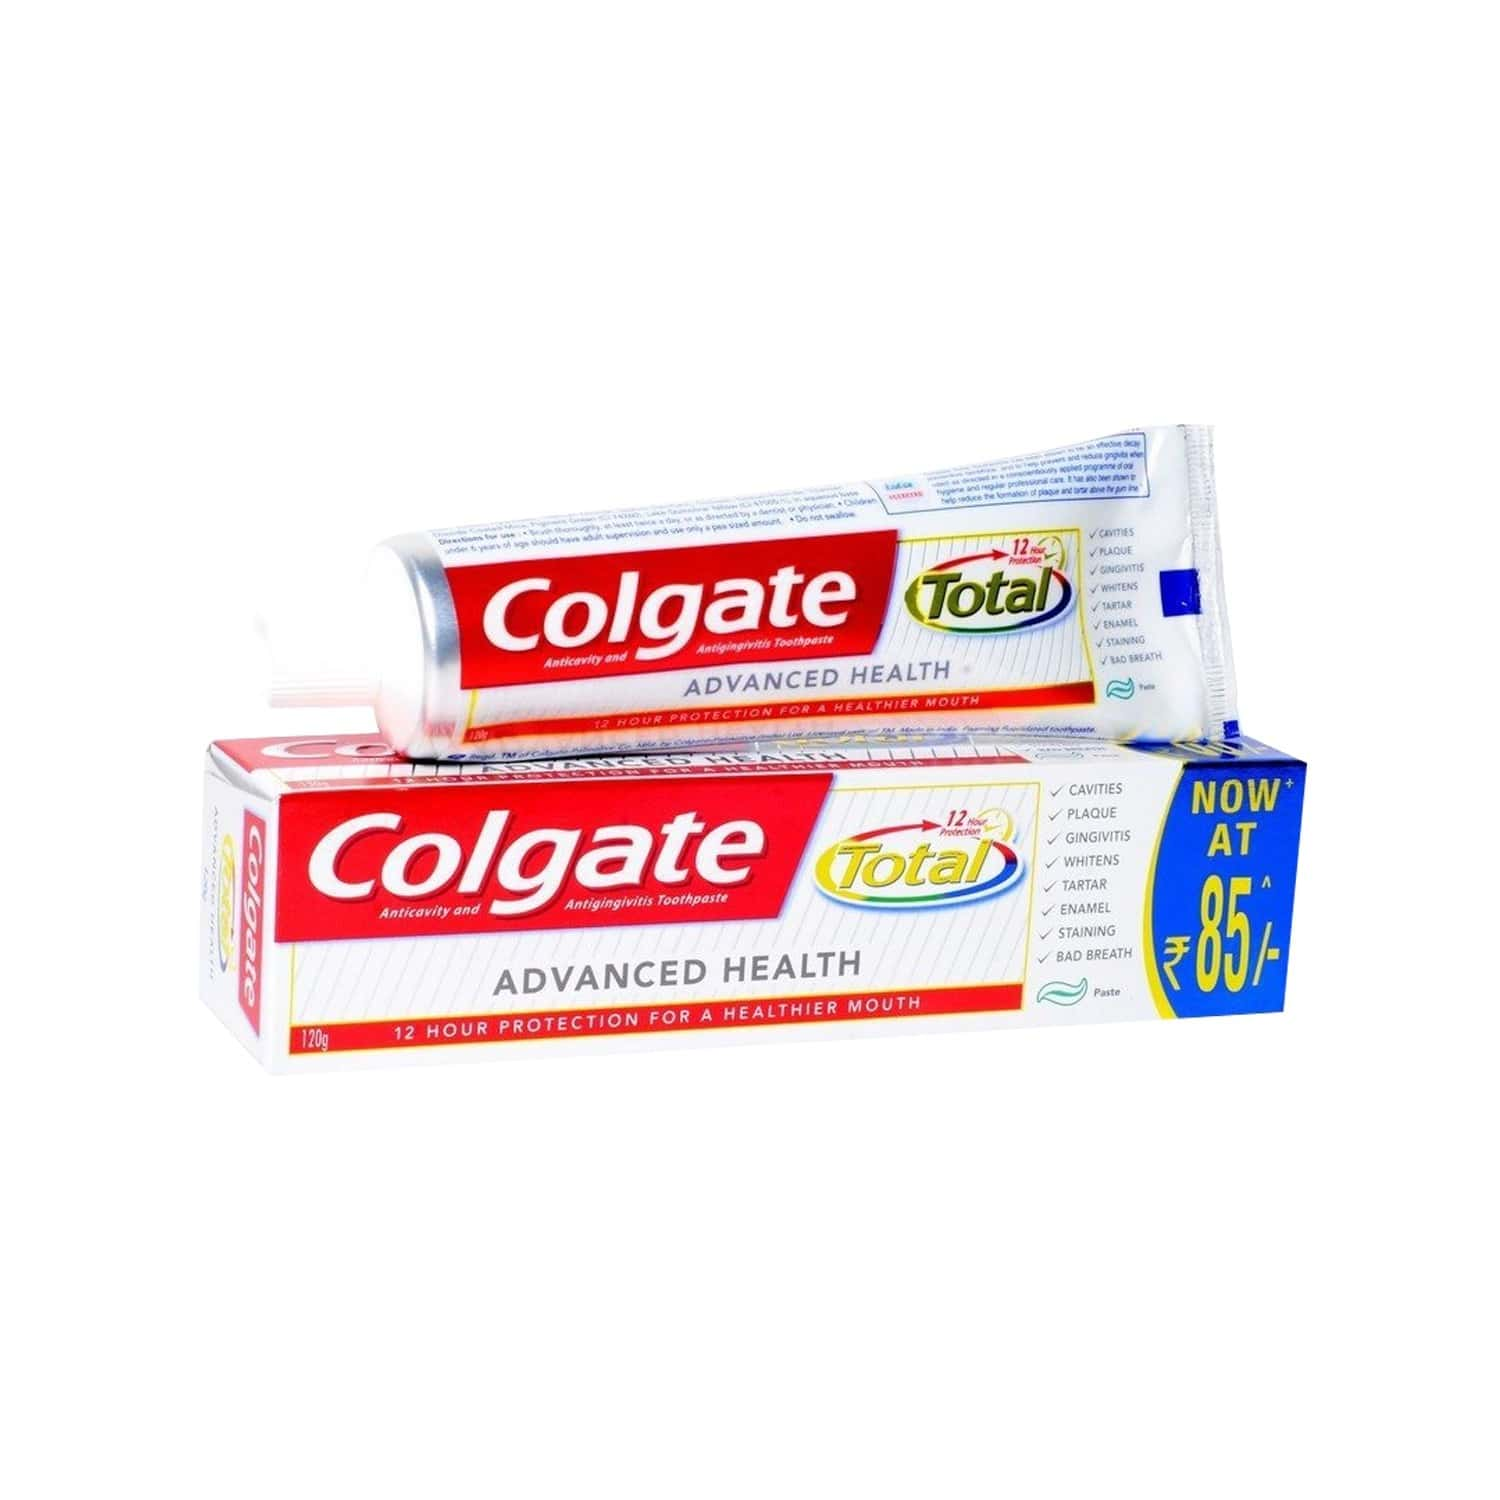 Colgate Toothpaste-total Advance Health - 120 G - Advanced Protection